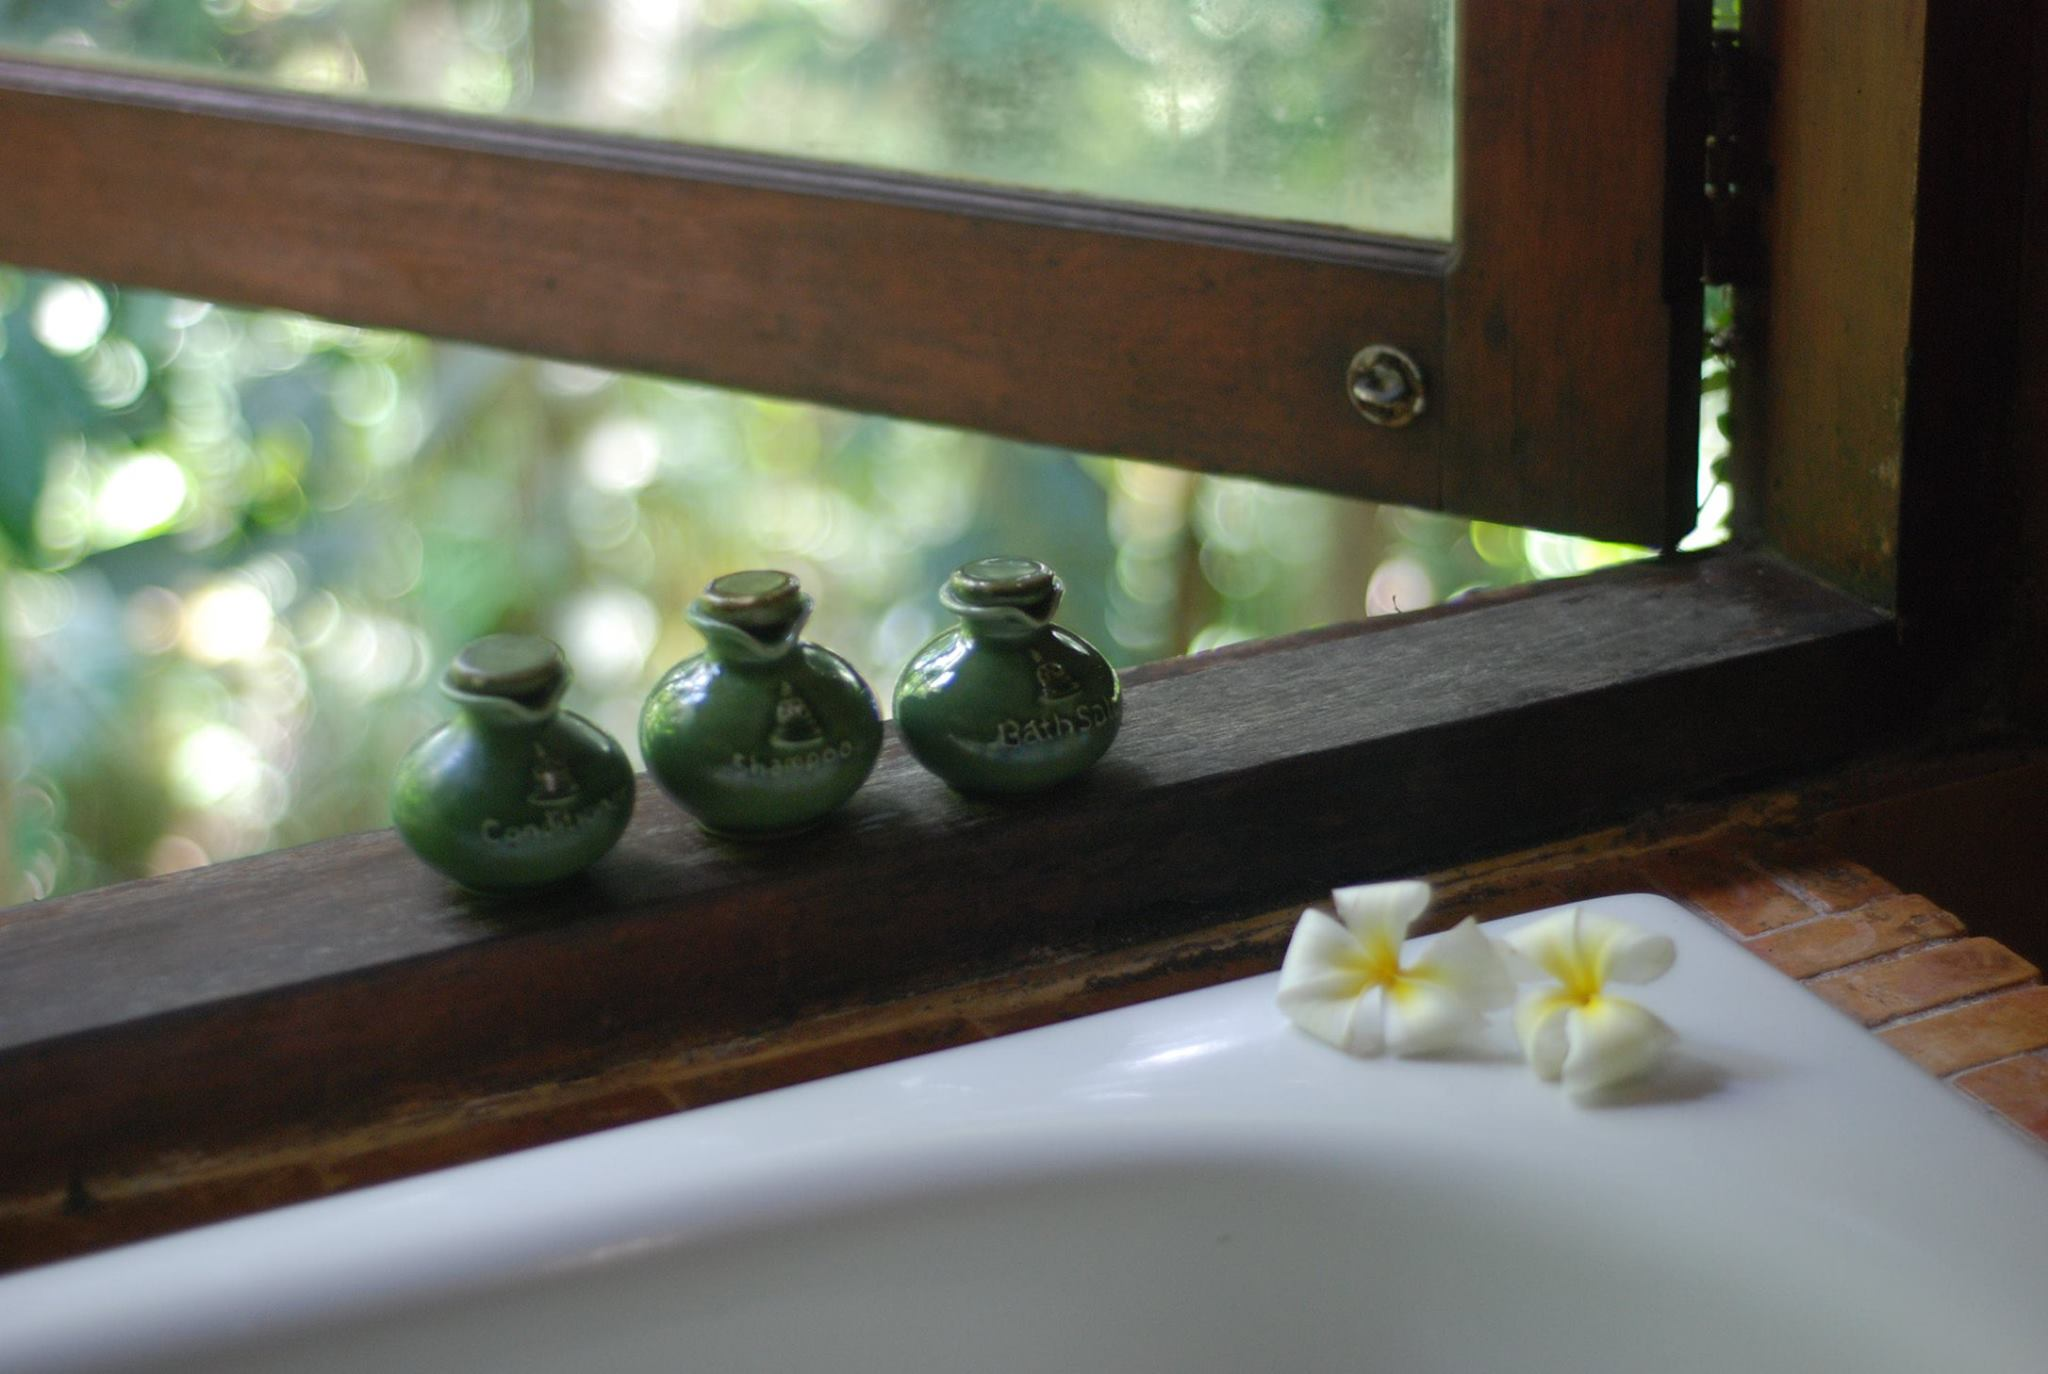 botanica-day-spa-ayurveda-center-bali-indonesia-11